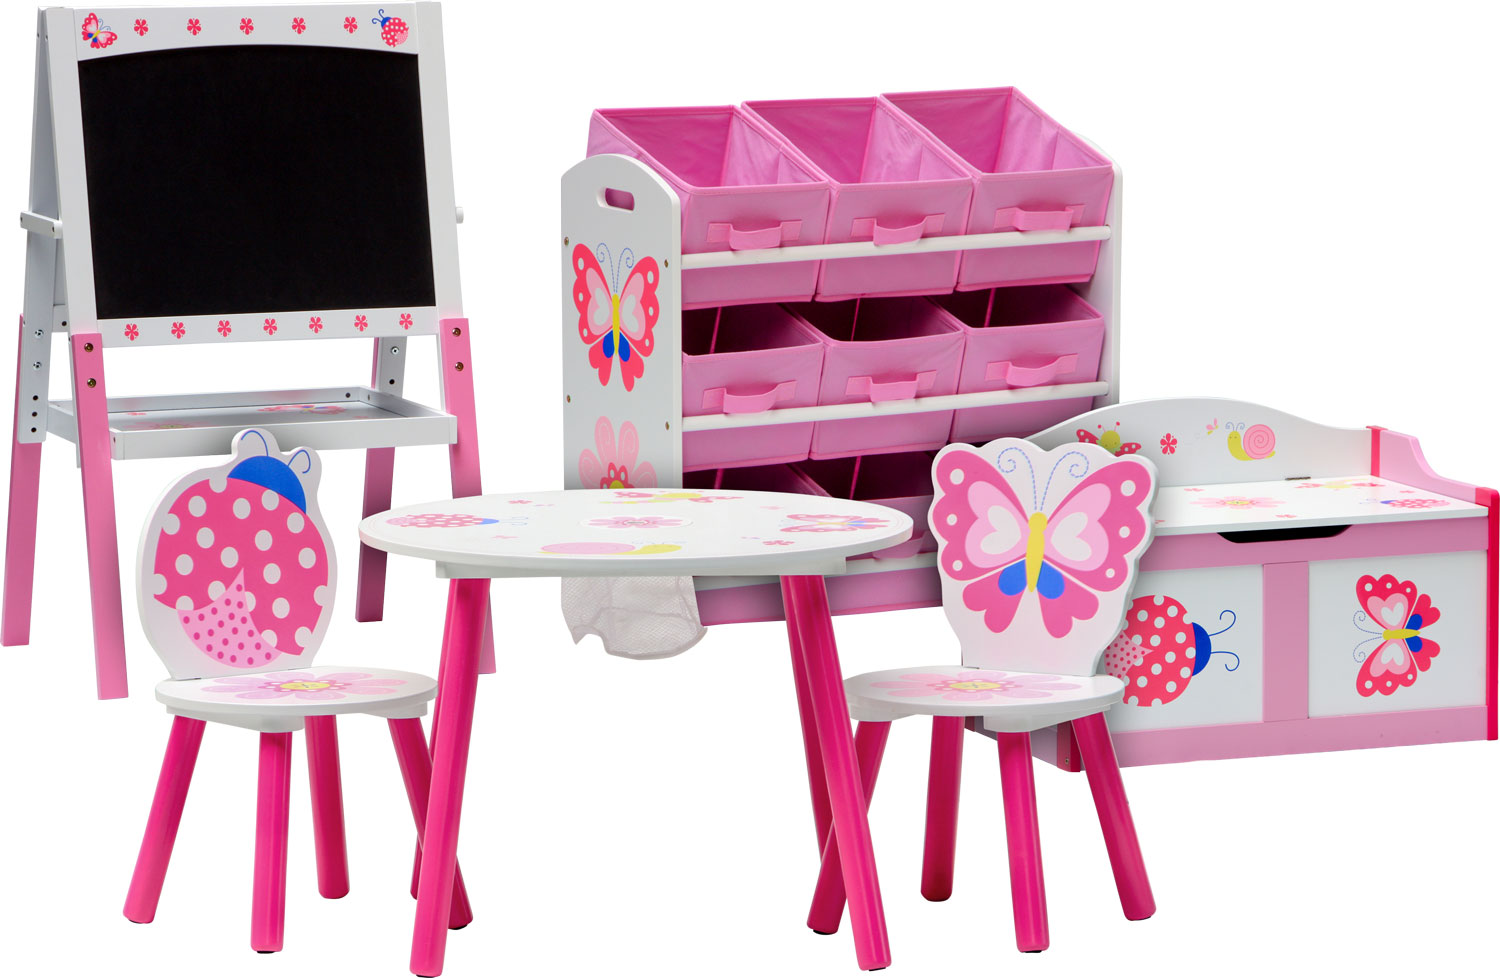 3 combinations 1 cheast bench Childrens seating area NOA table and chair set toybox bench nursery furniture kids 1 table IB-Style 2 chairs